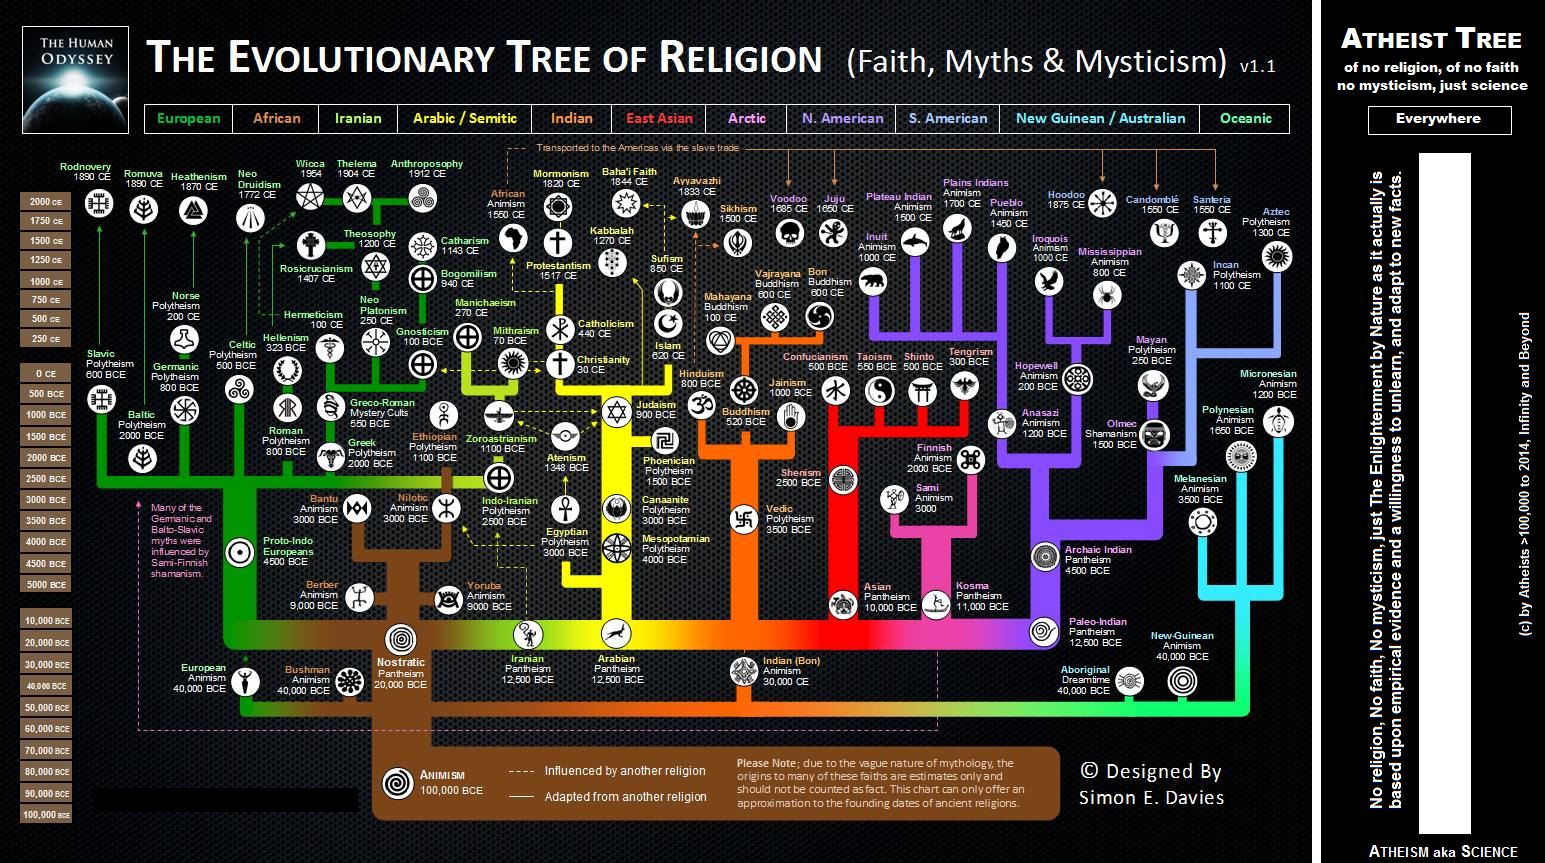 Atheism aka Science vs Tree of Religion